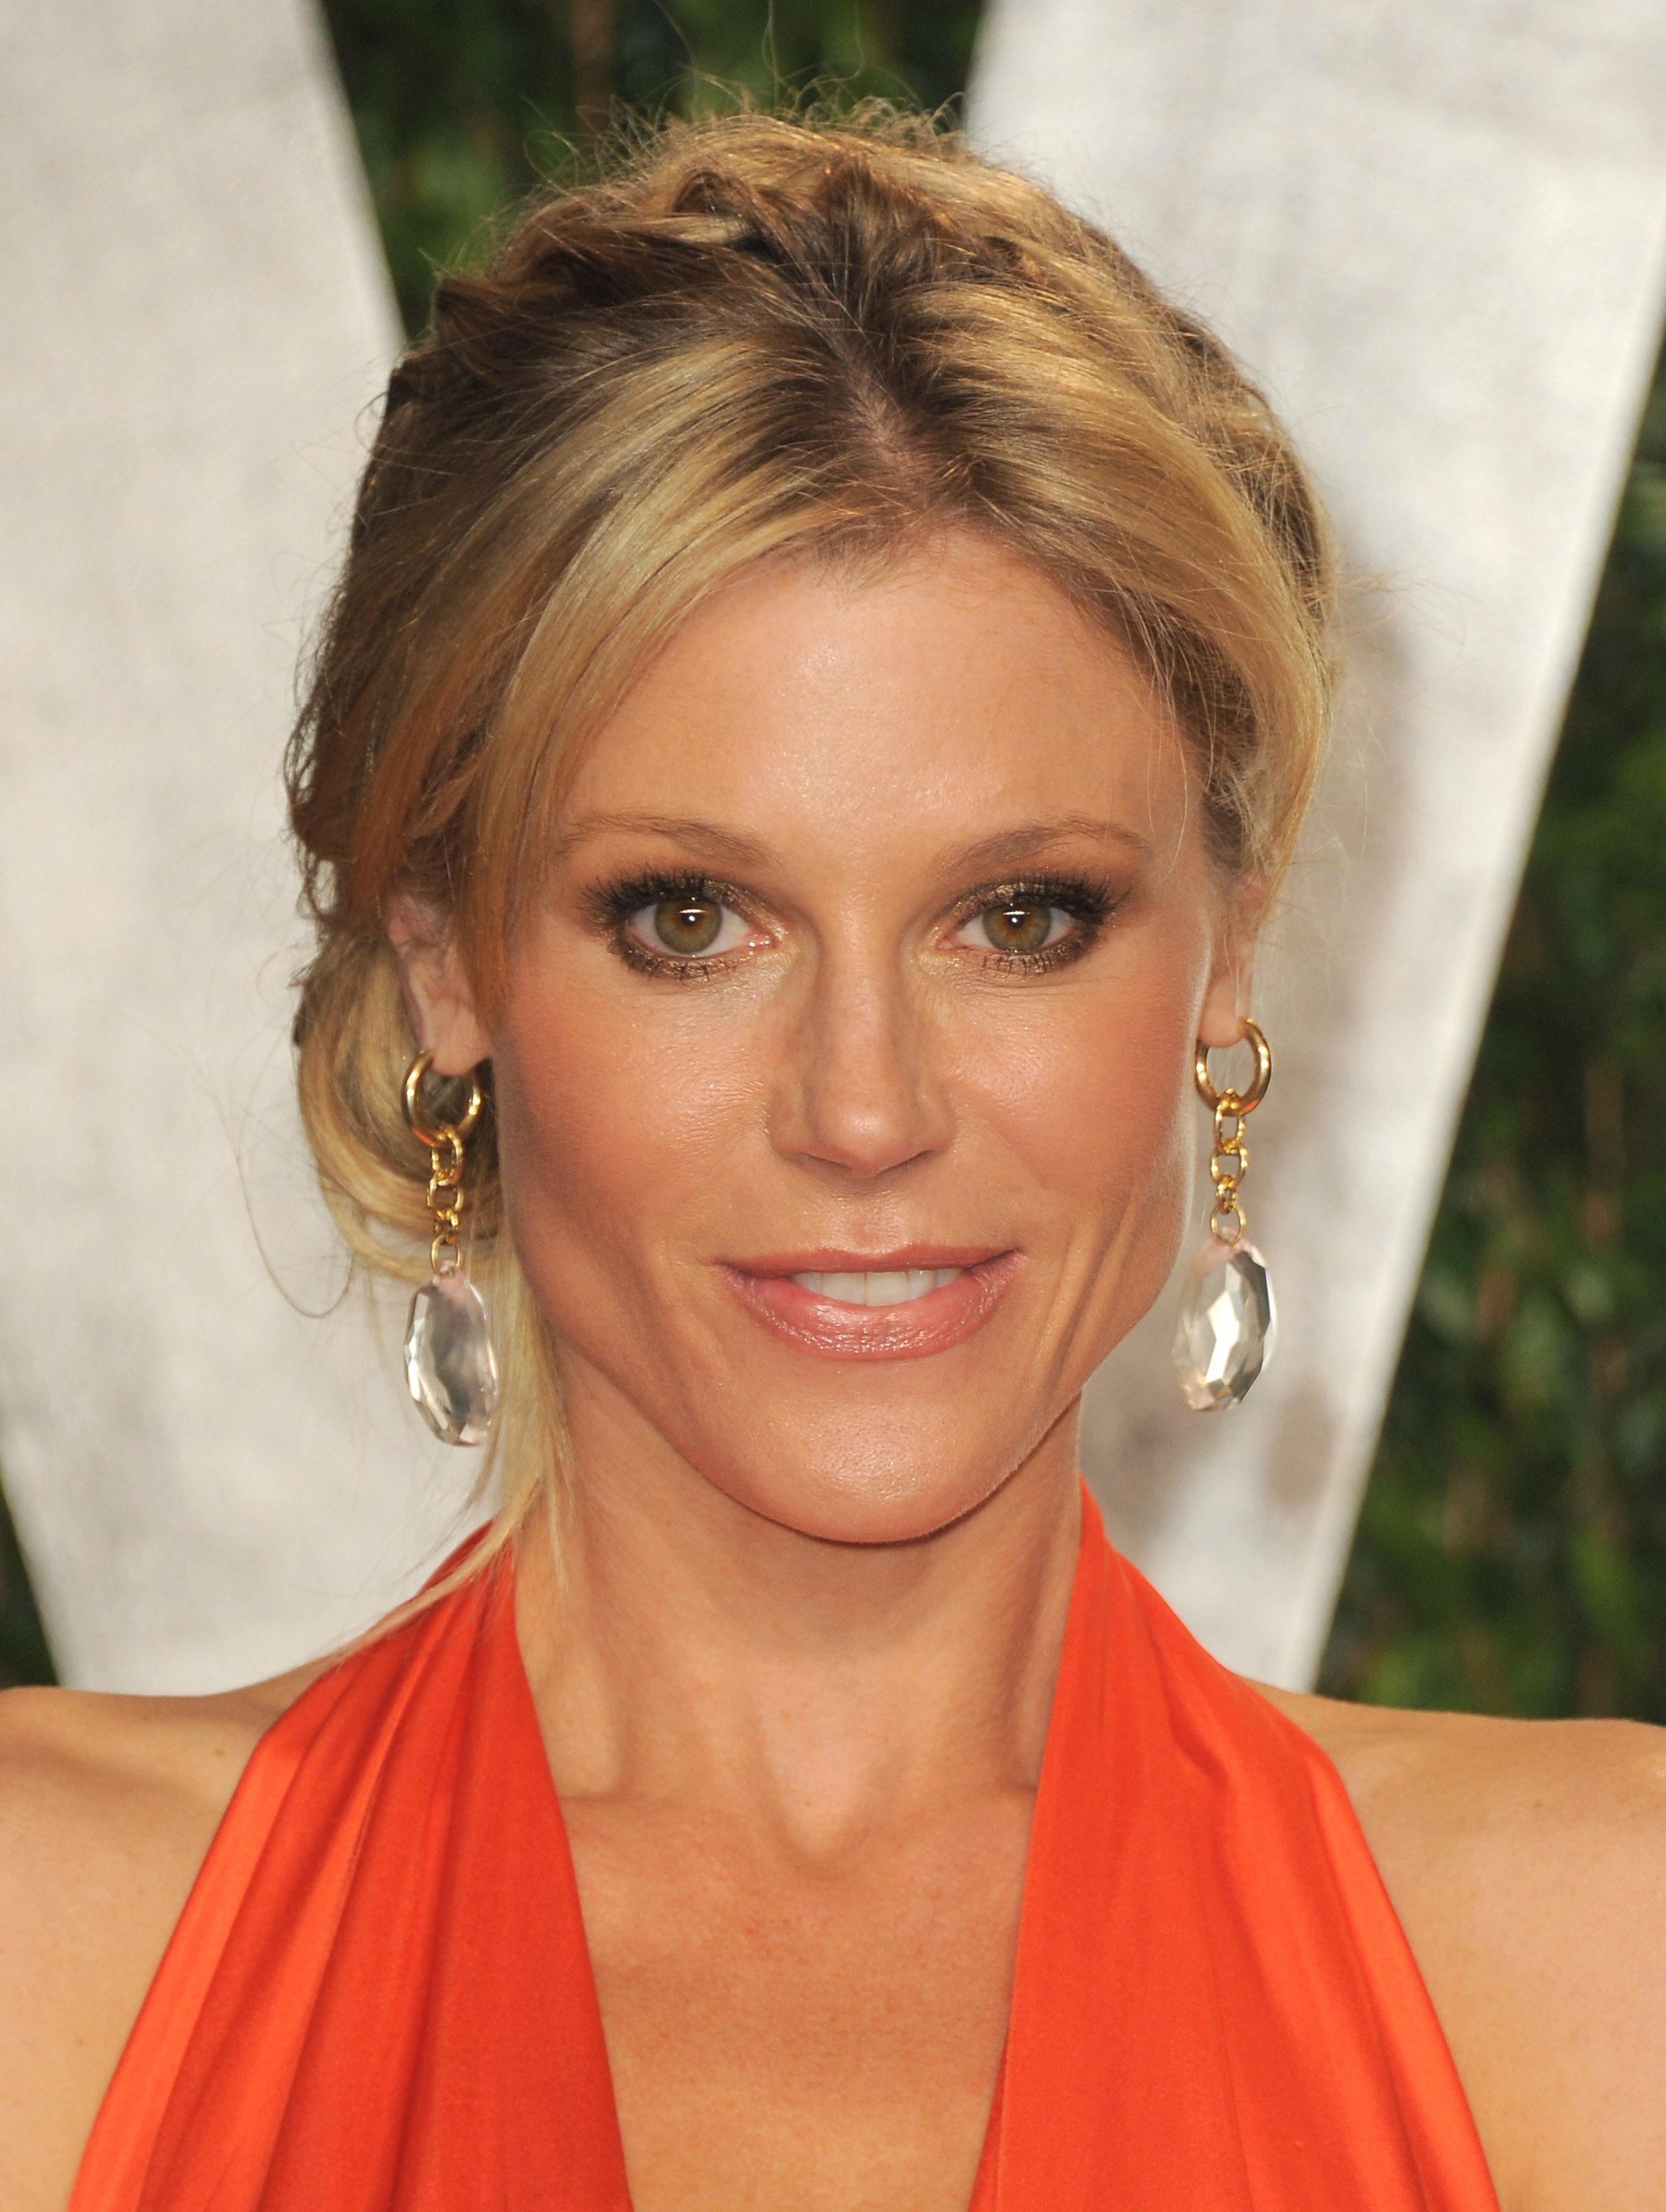 Julie Bowen up close at the Vanity Fair Oscar party.